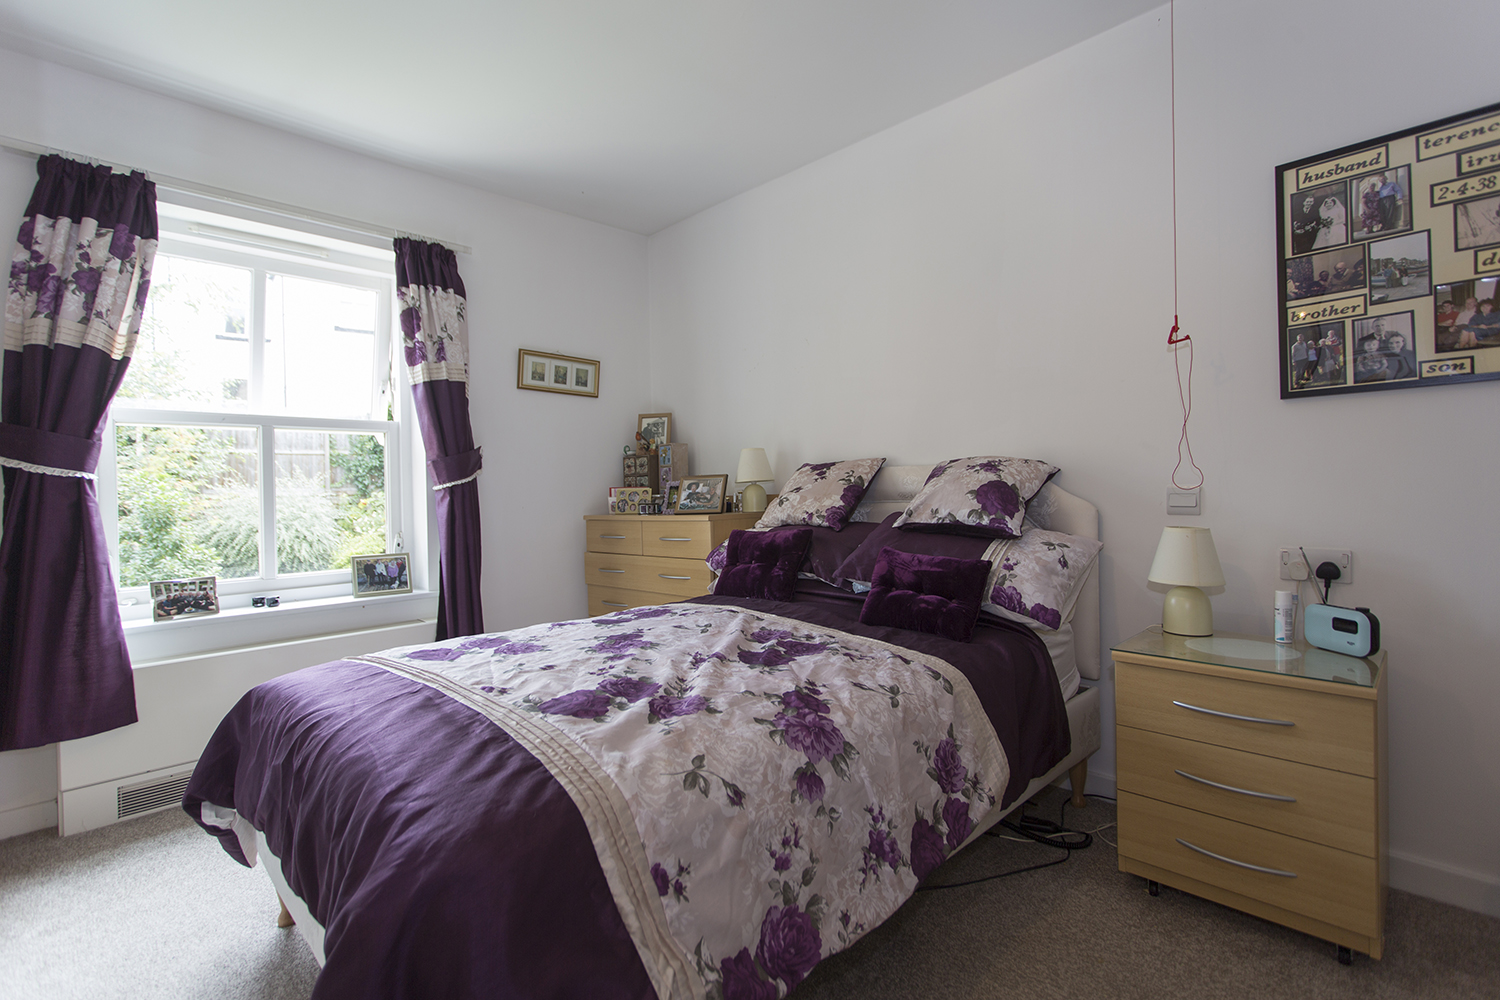 Ilkley_Grove_House_Private_Room